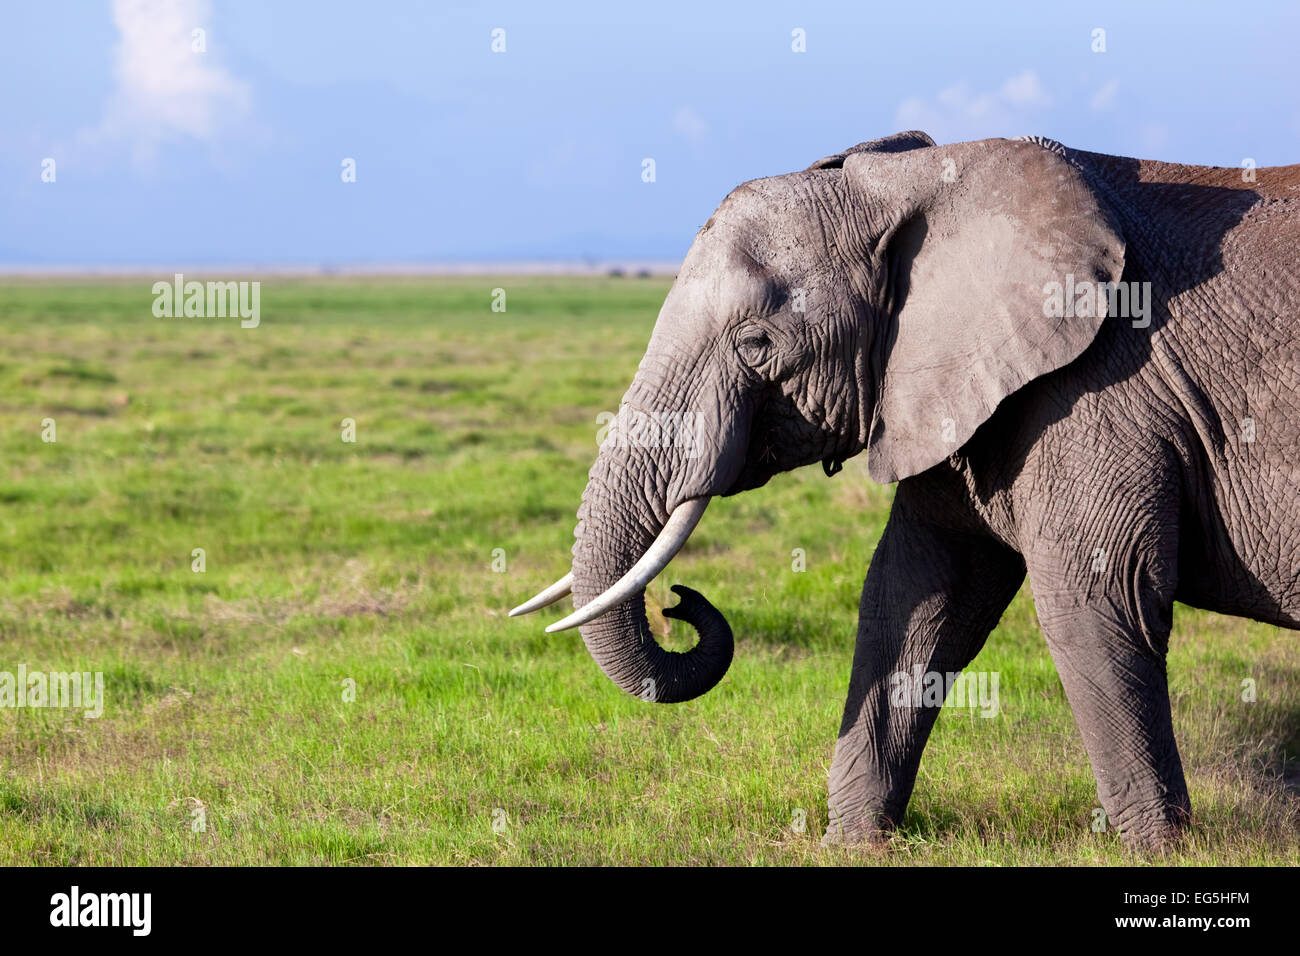 Elephant portrait on African savanna. Safari in Amboseli, Kenya, Africa - Stock Image